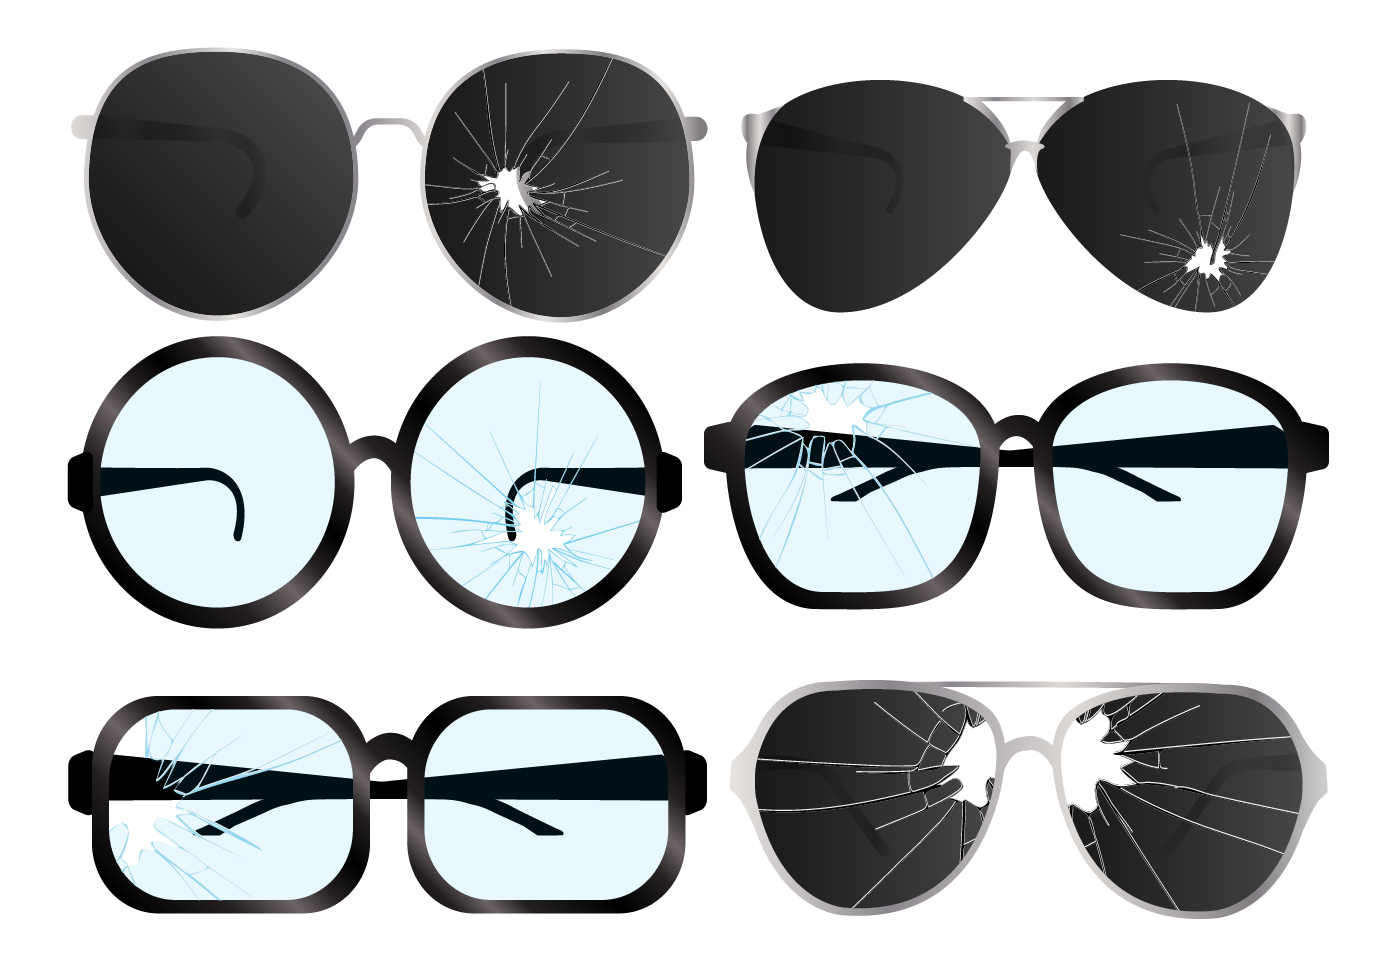 cracked glasses vector set download free vector art